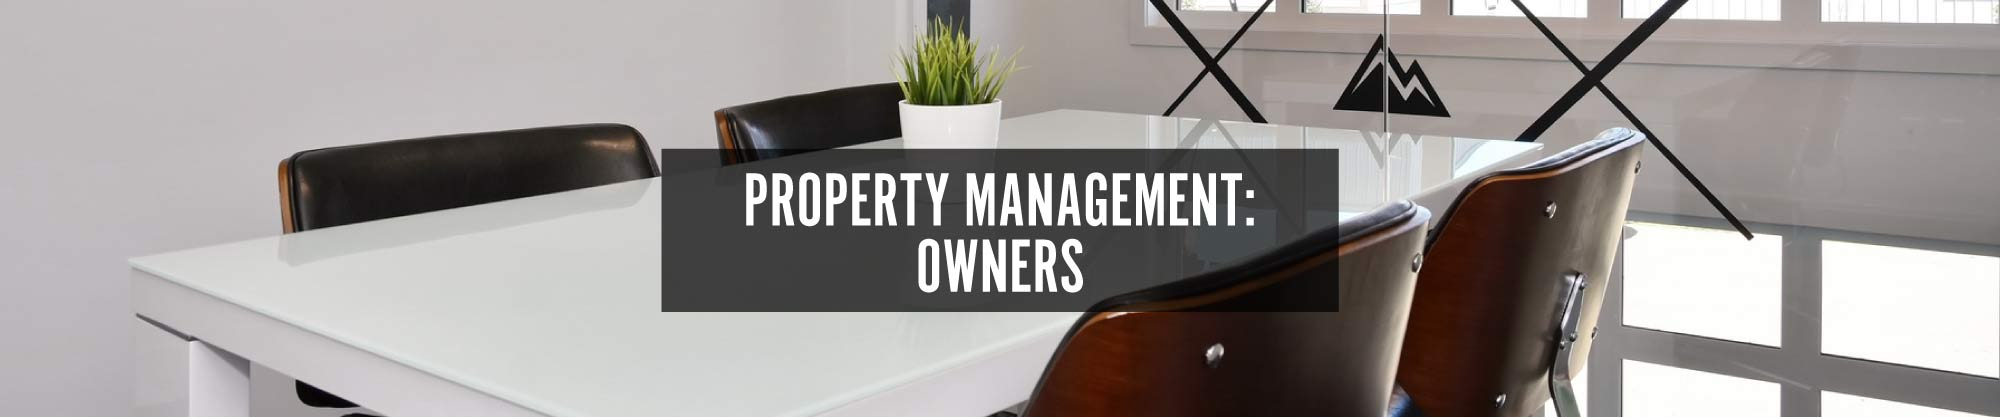 Grassroots Property Management - Information for Property Owners and Landlords - Grande Prairie, AB